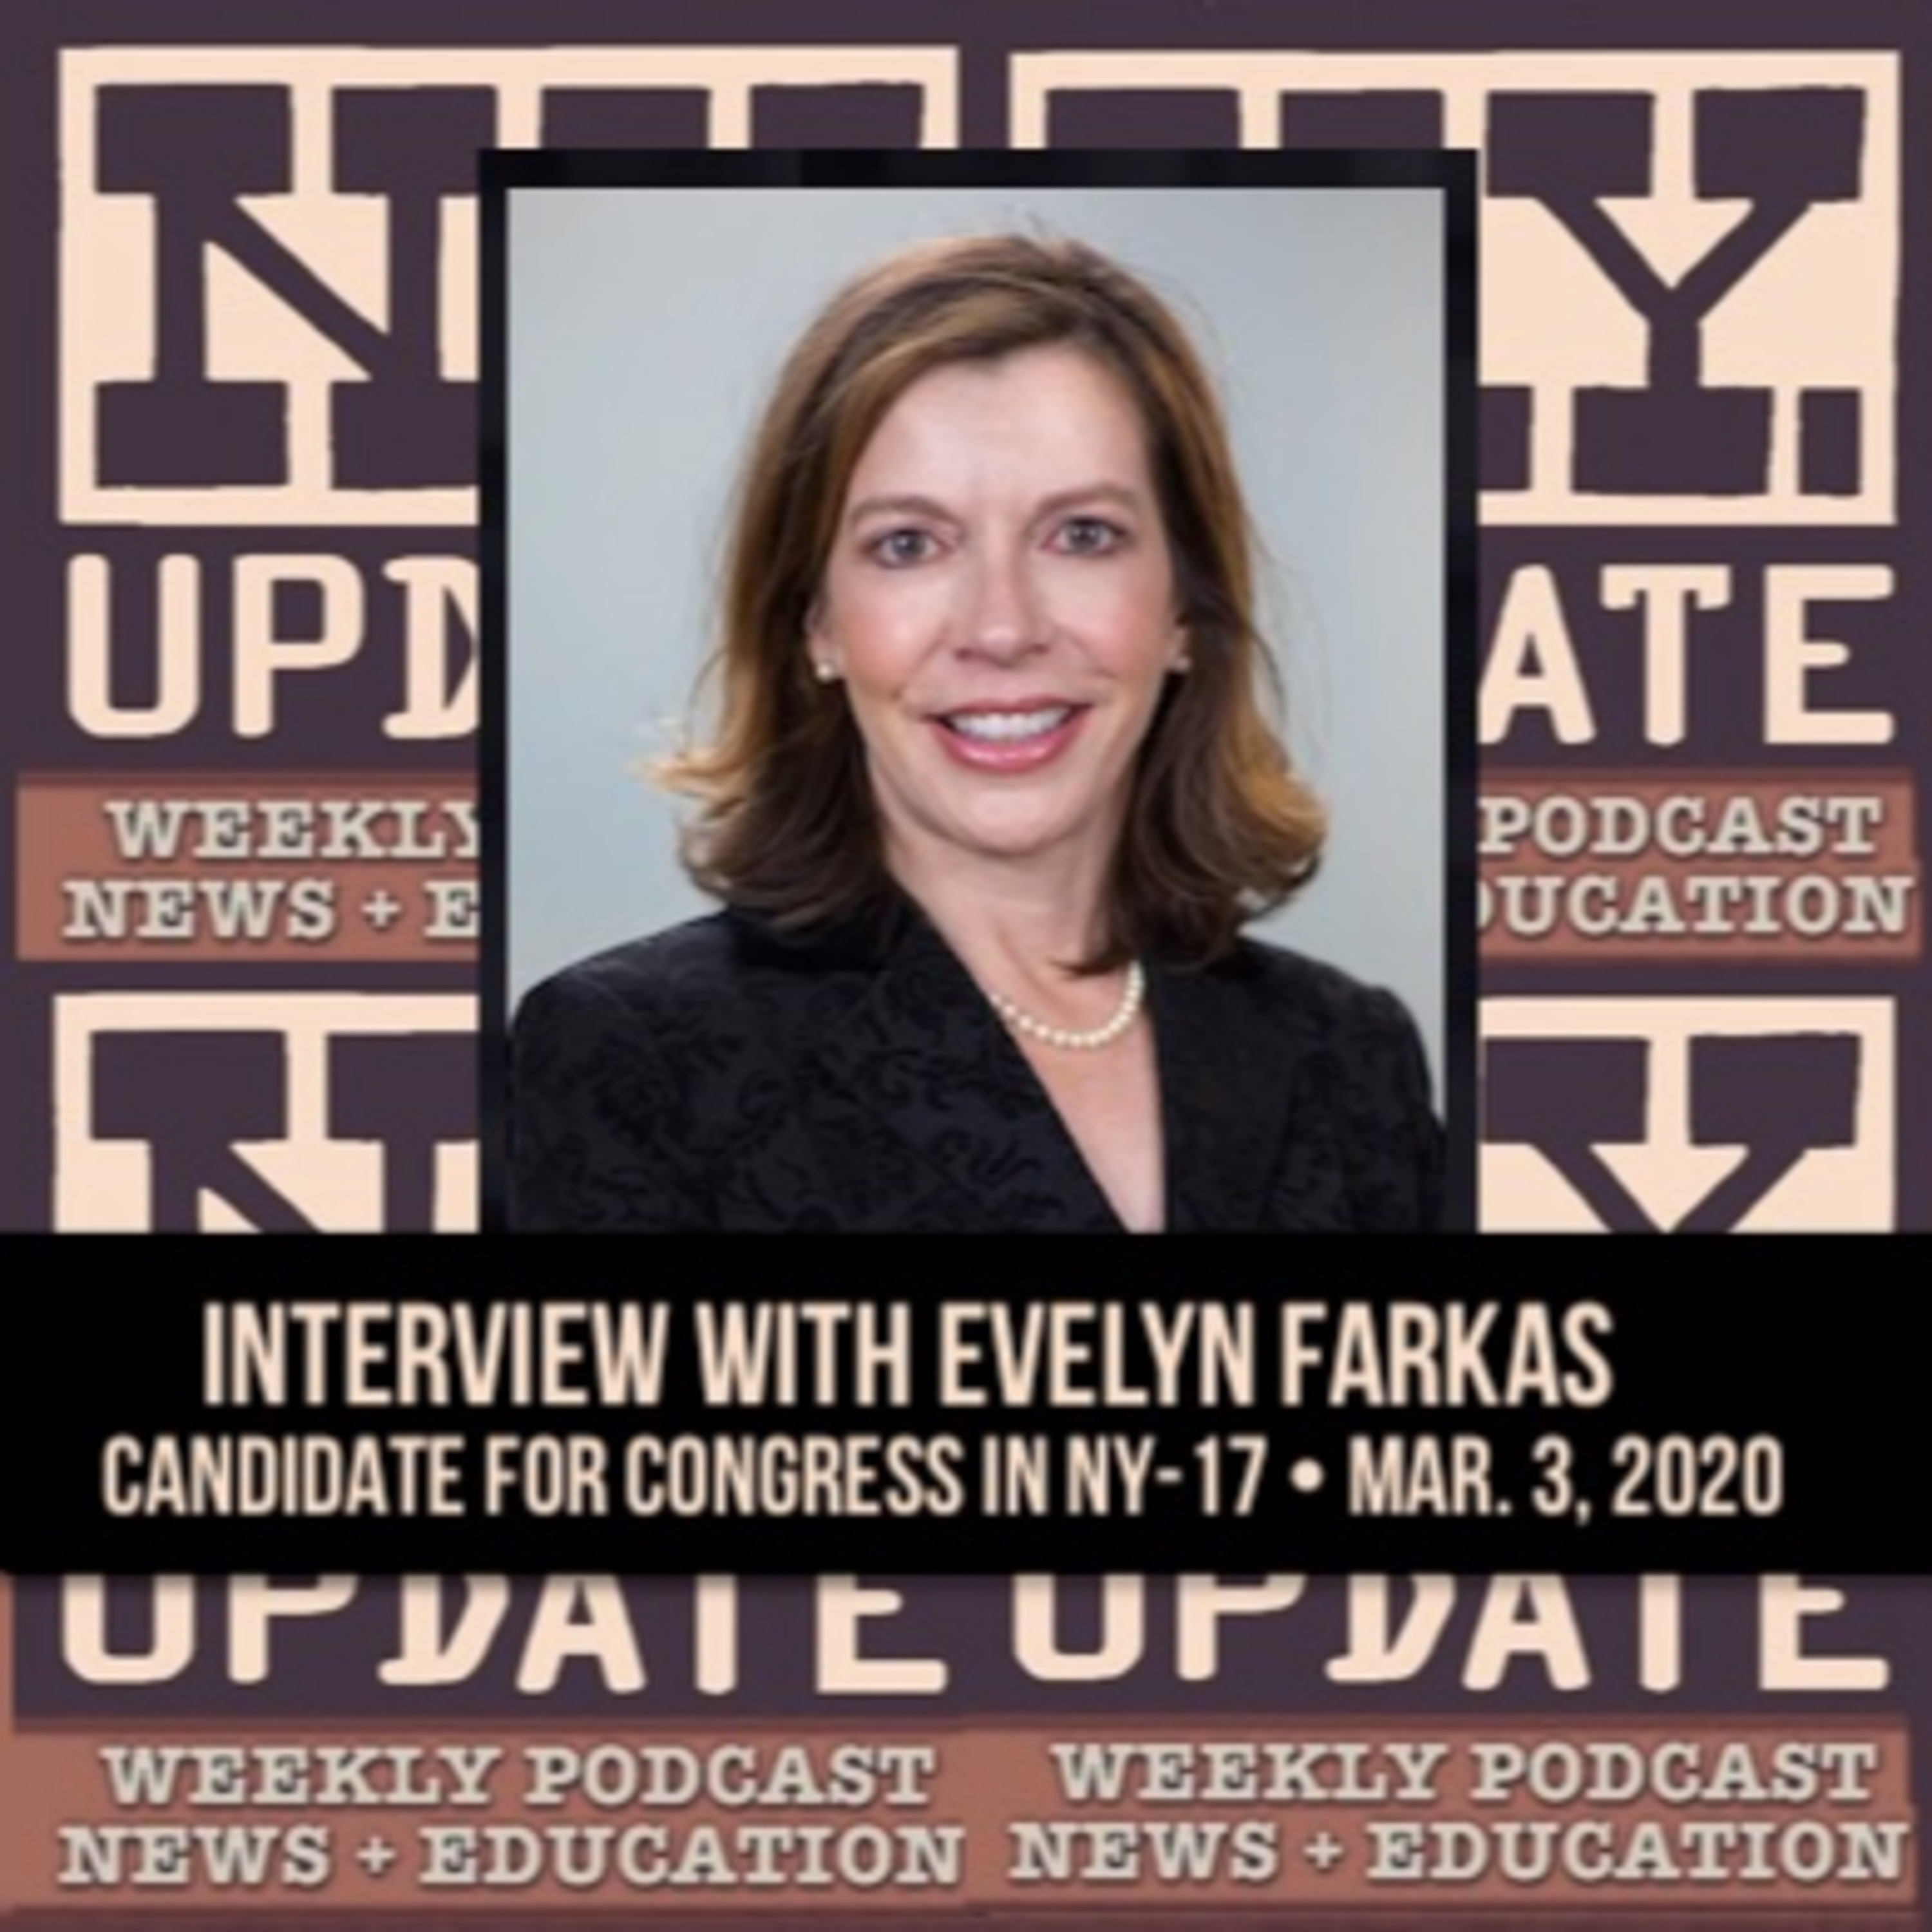 Interview: Evelyn Farkas for Congress in NY CD-17